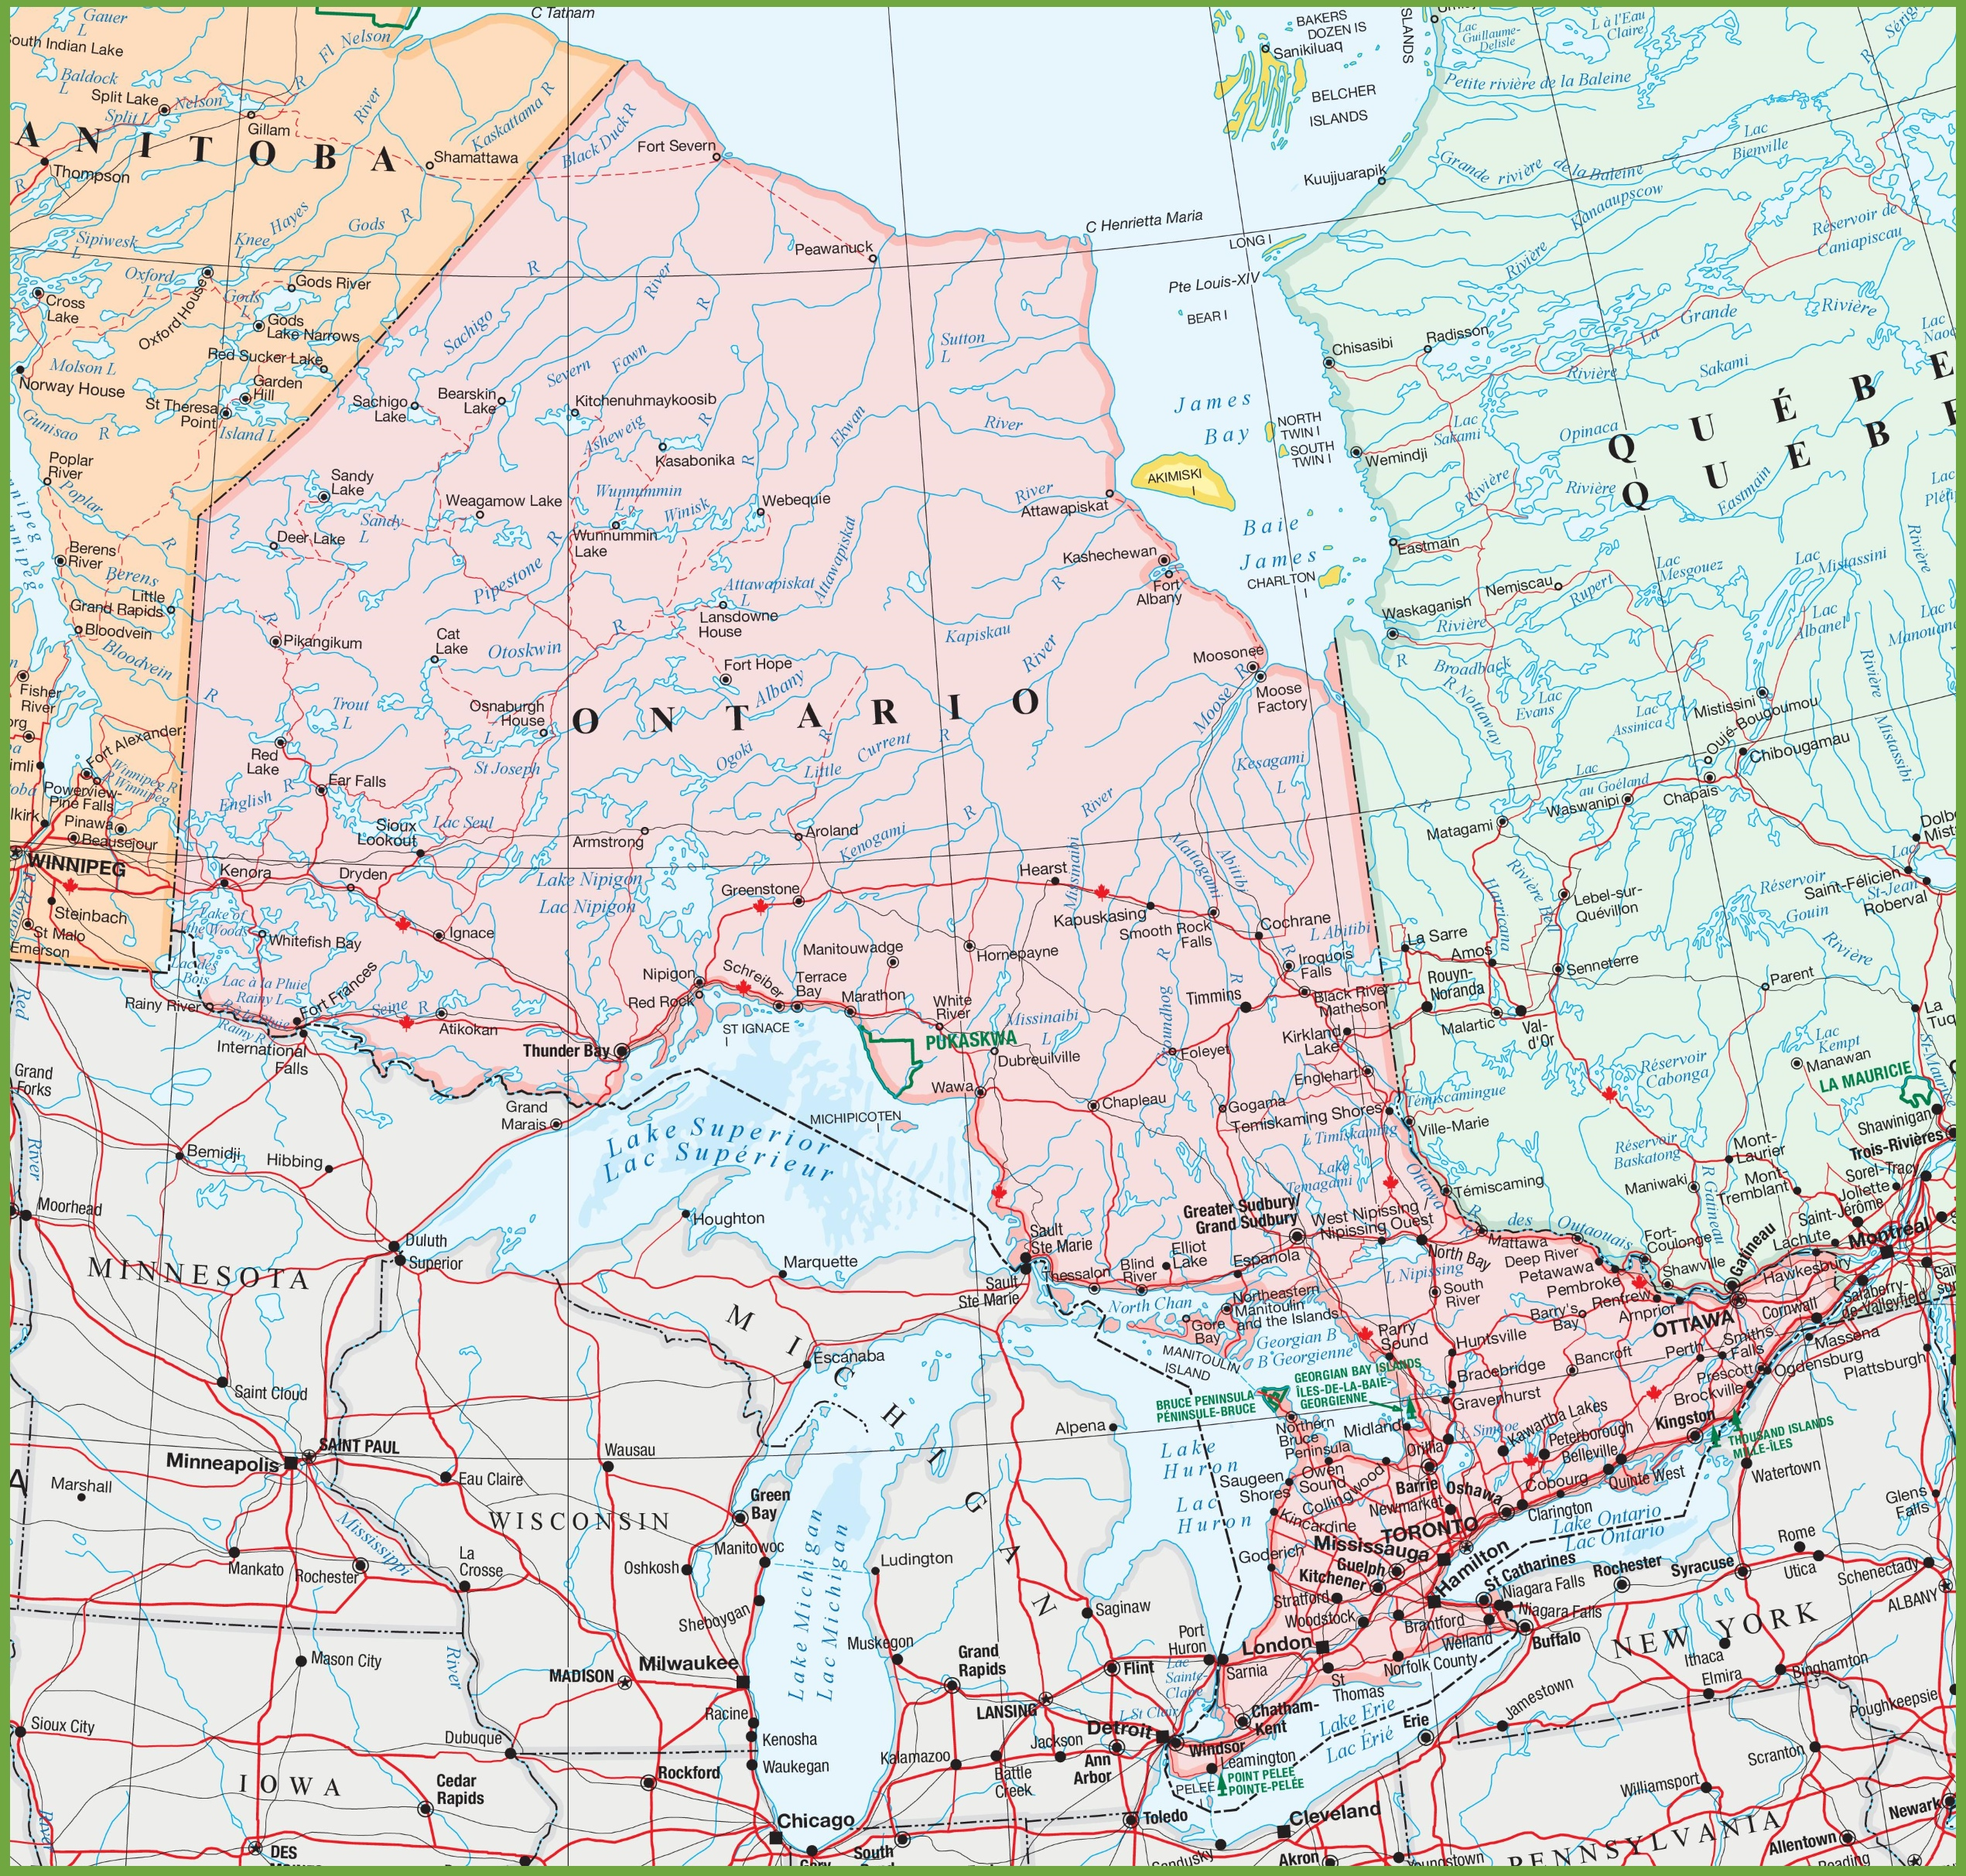 Onterio Canada Map.Map Of Ontario With Cities And Towns